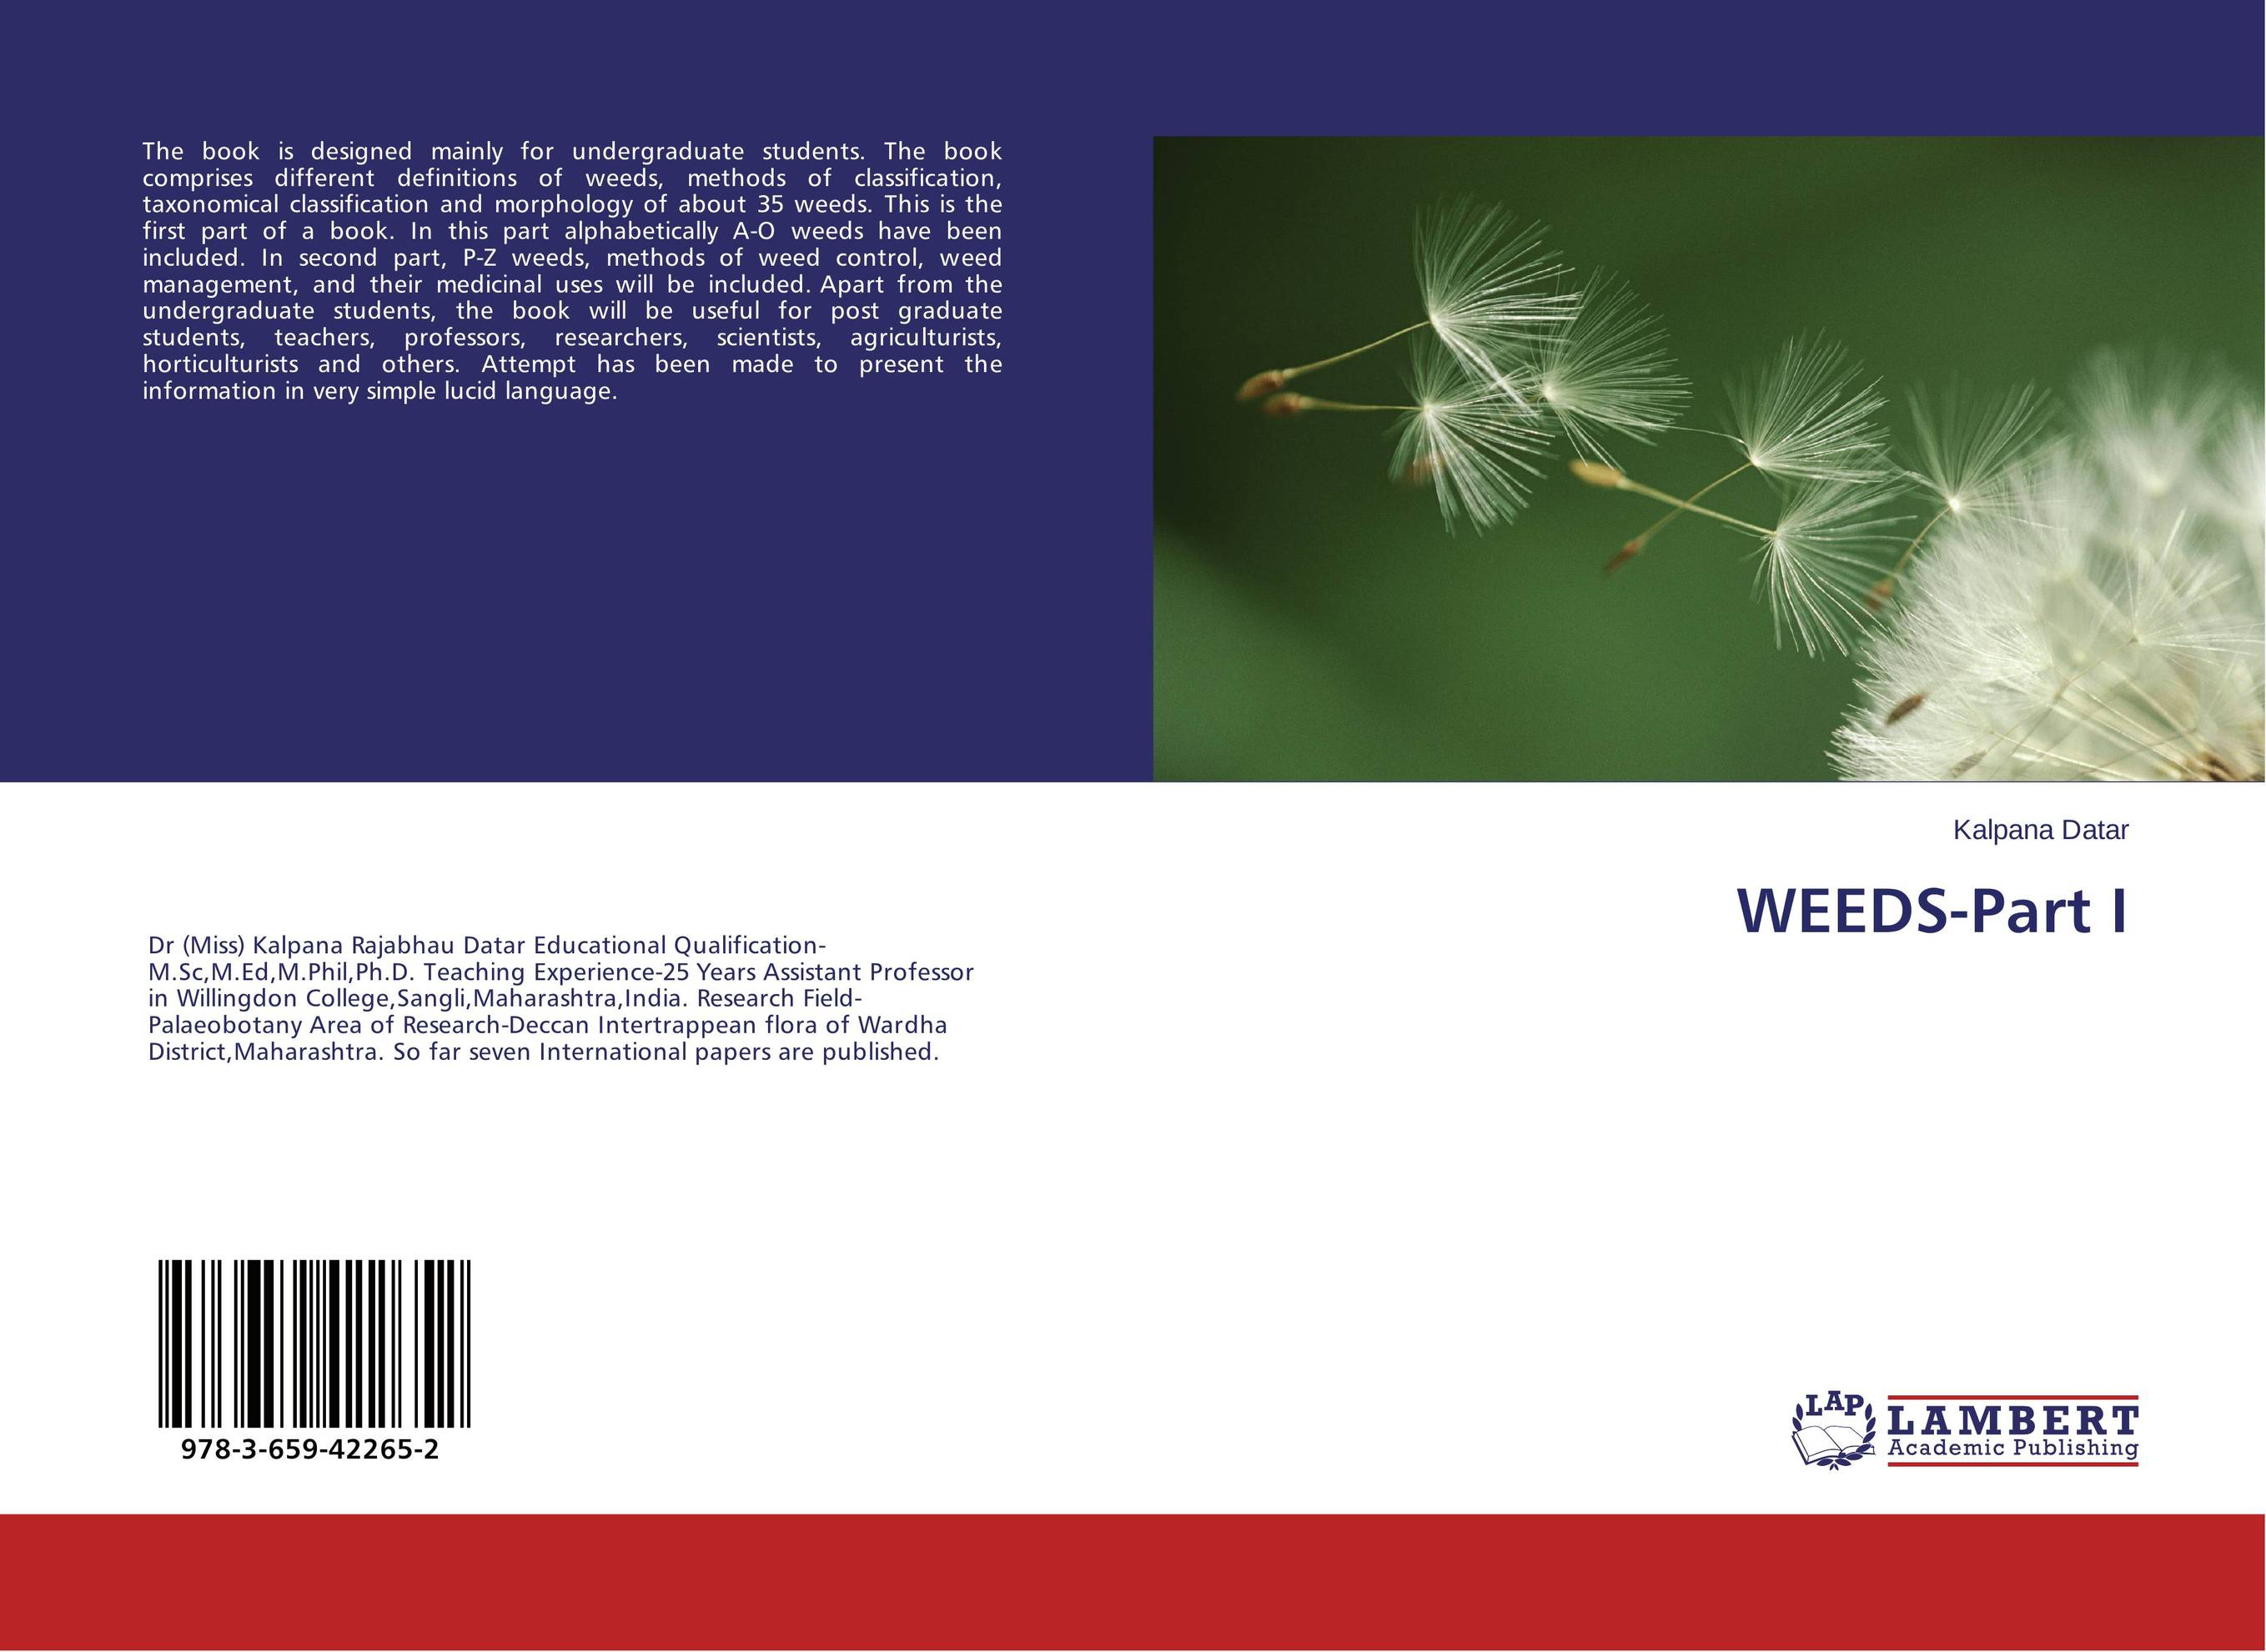 WEEDS-Part I methods in enzymology chromatin and chromatin remodeling enzymes part a vol 375